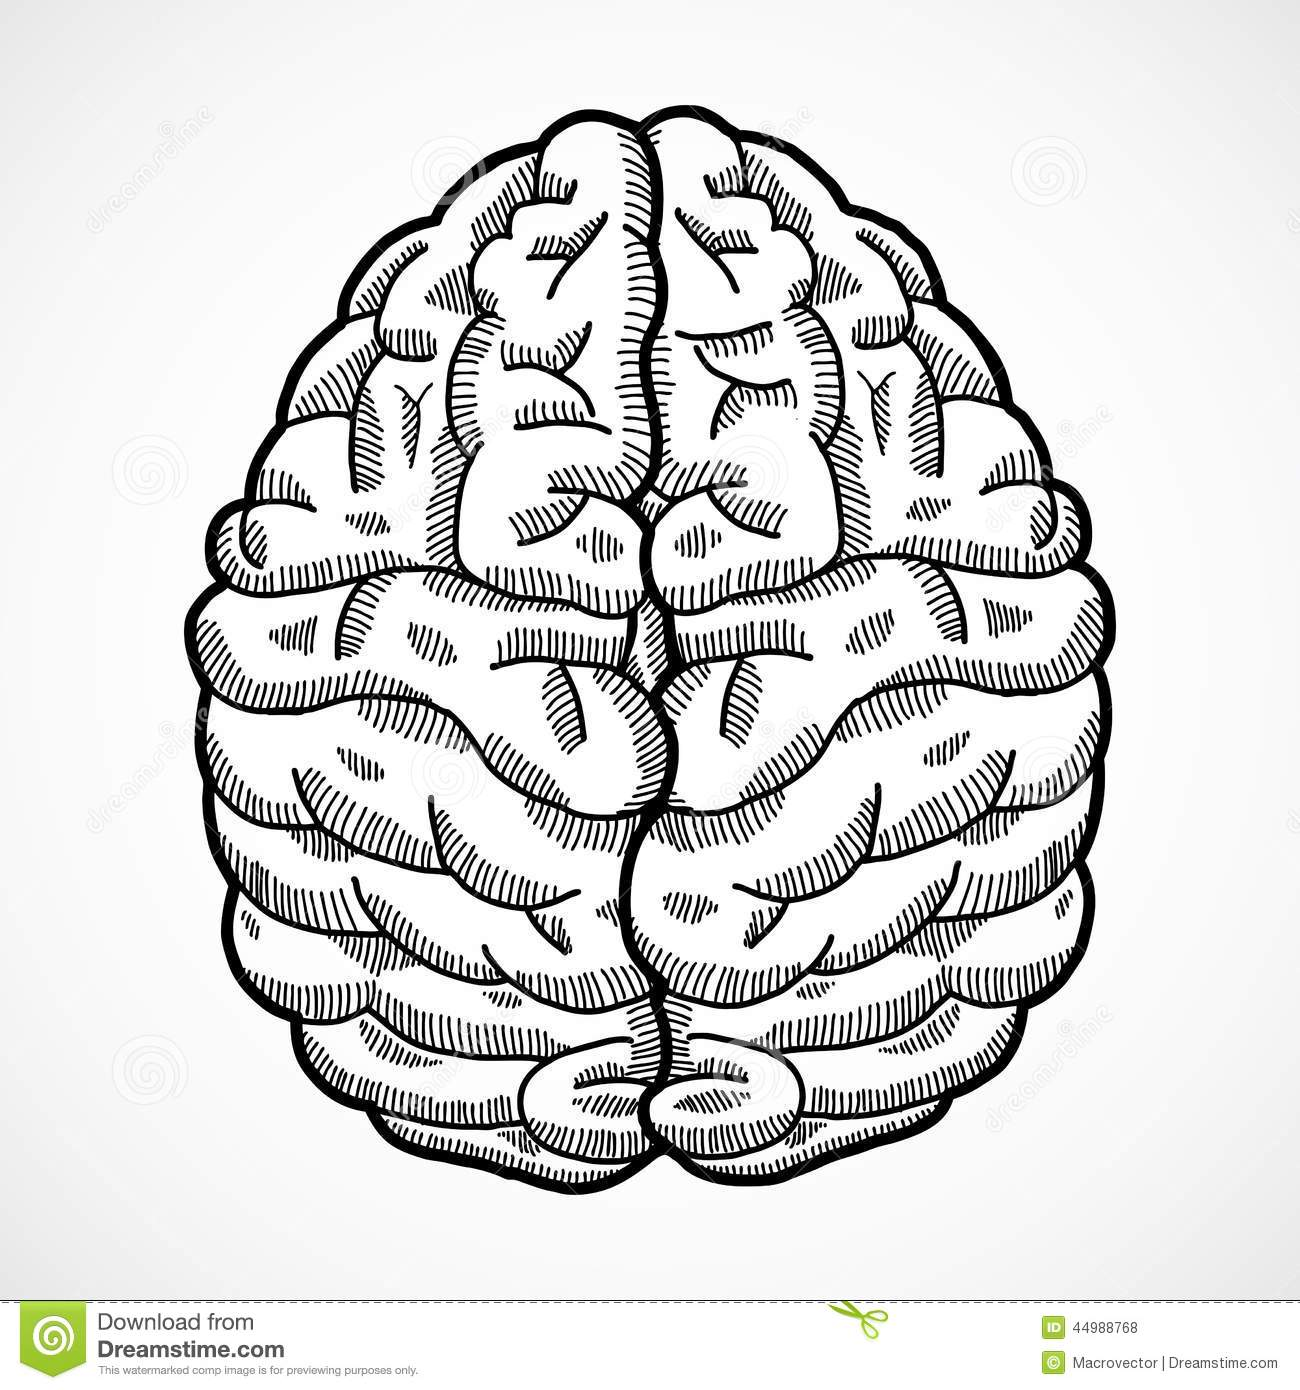 human brain sketch stock vector illustration of brainy